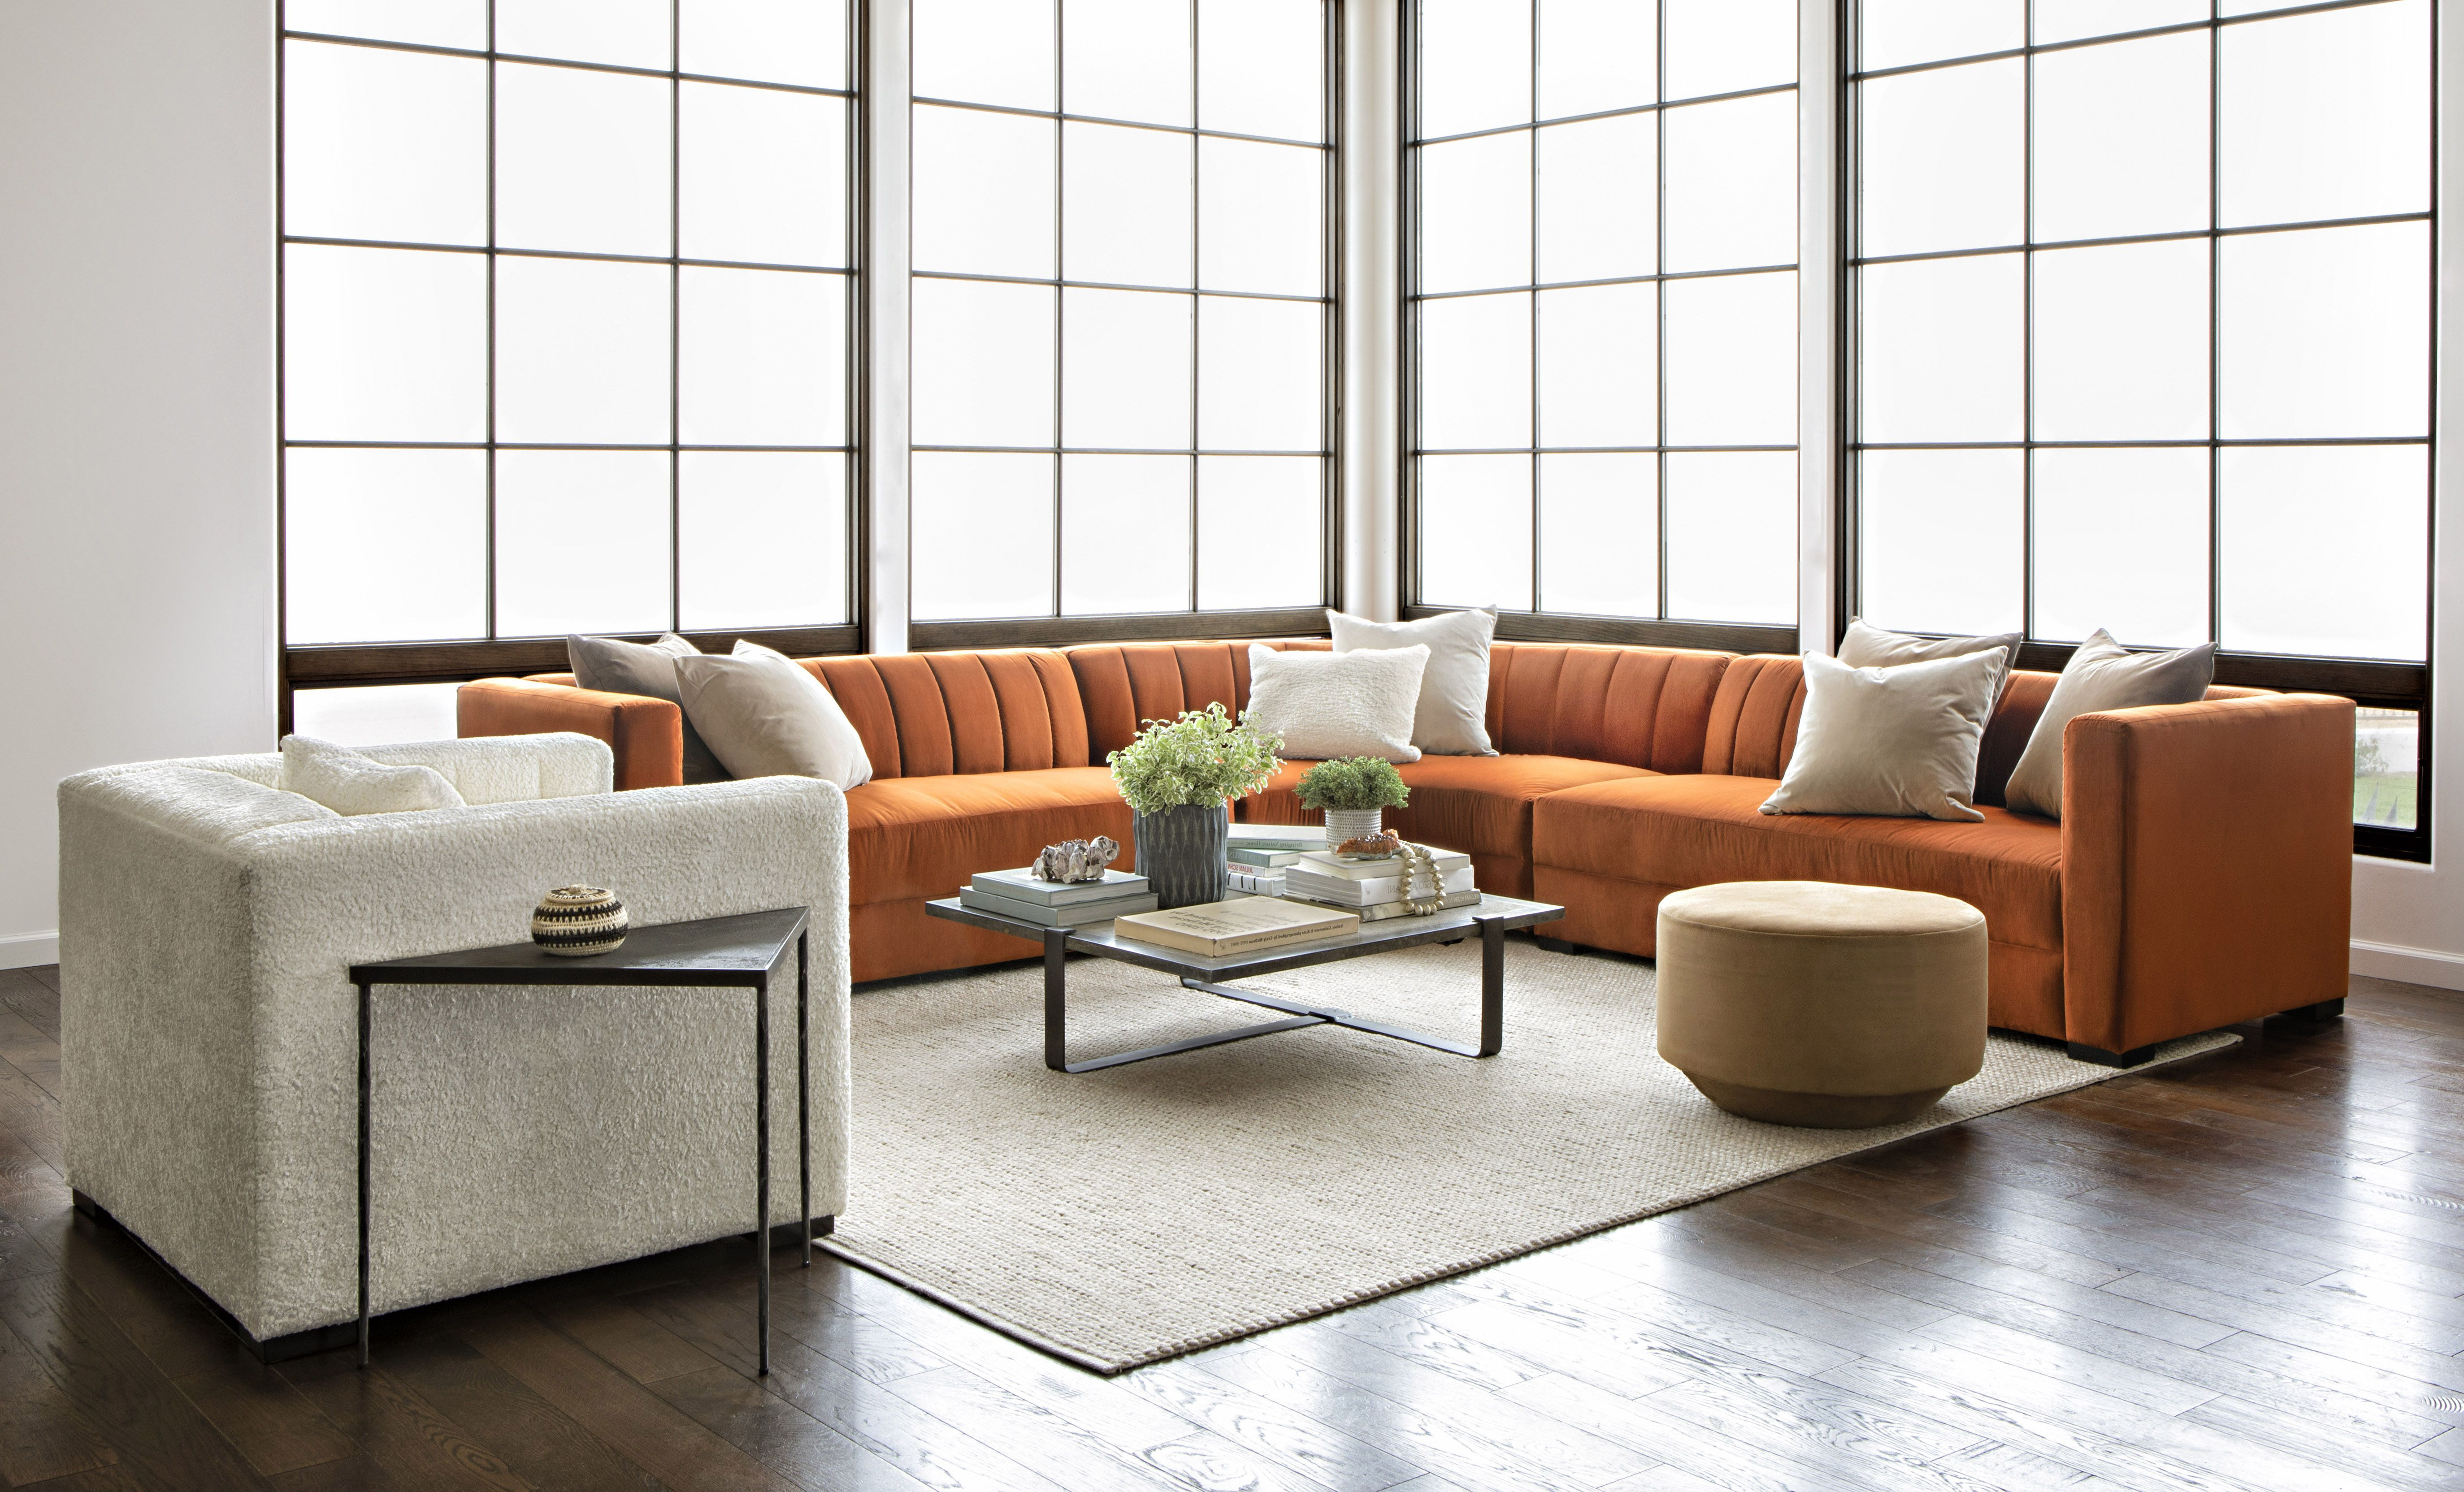 Matteo Arm Sofa Chairs By Nate Berkus And Jeremiah Brent With Well Known Soane 3 Piece Sectionalnate Berkus And Jeremiah Brent (View 9 of 20)